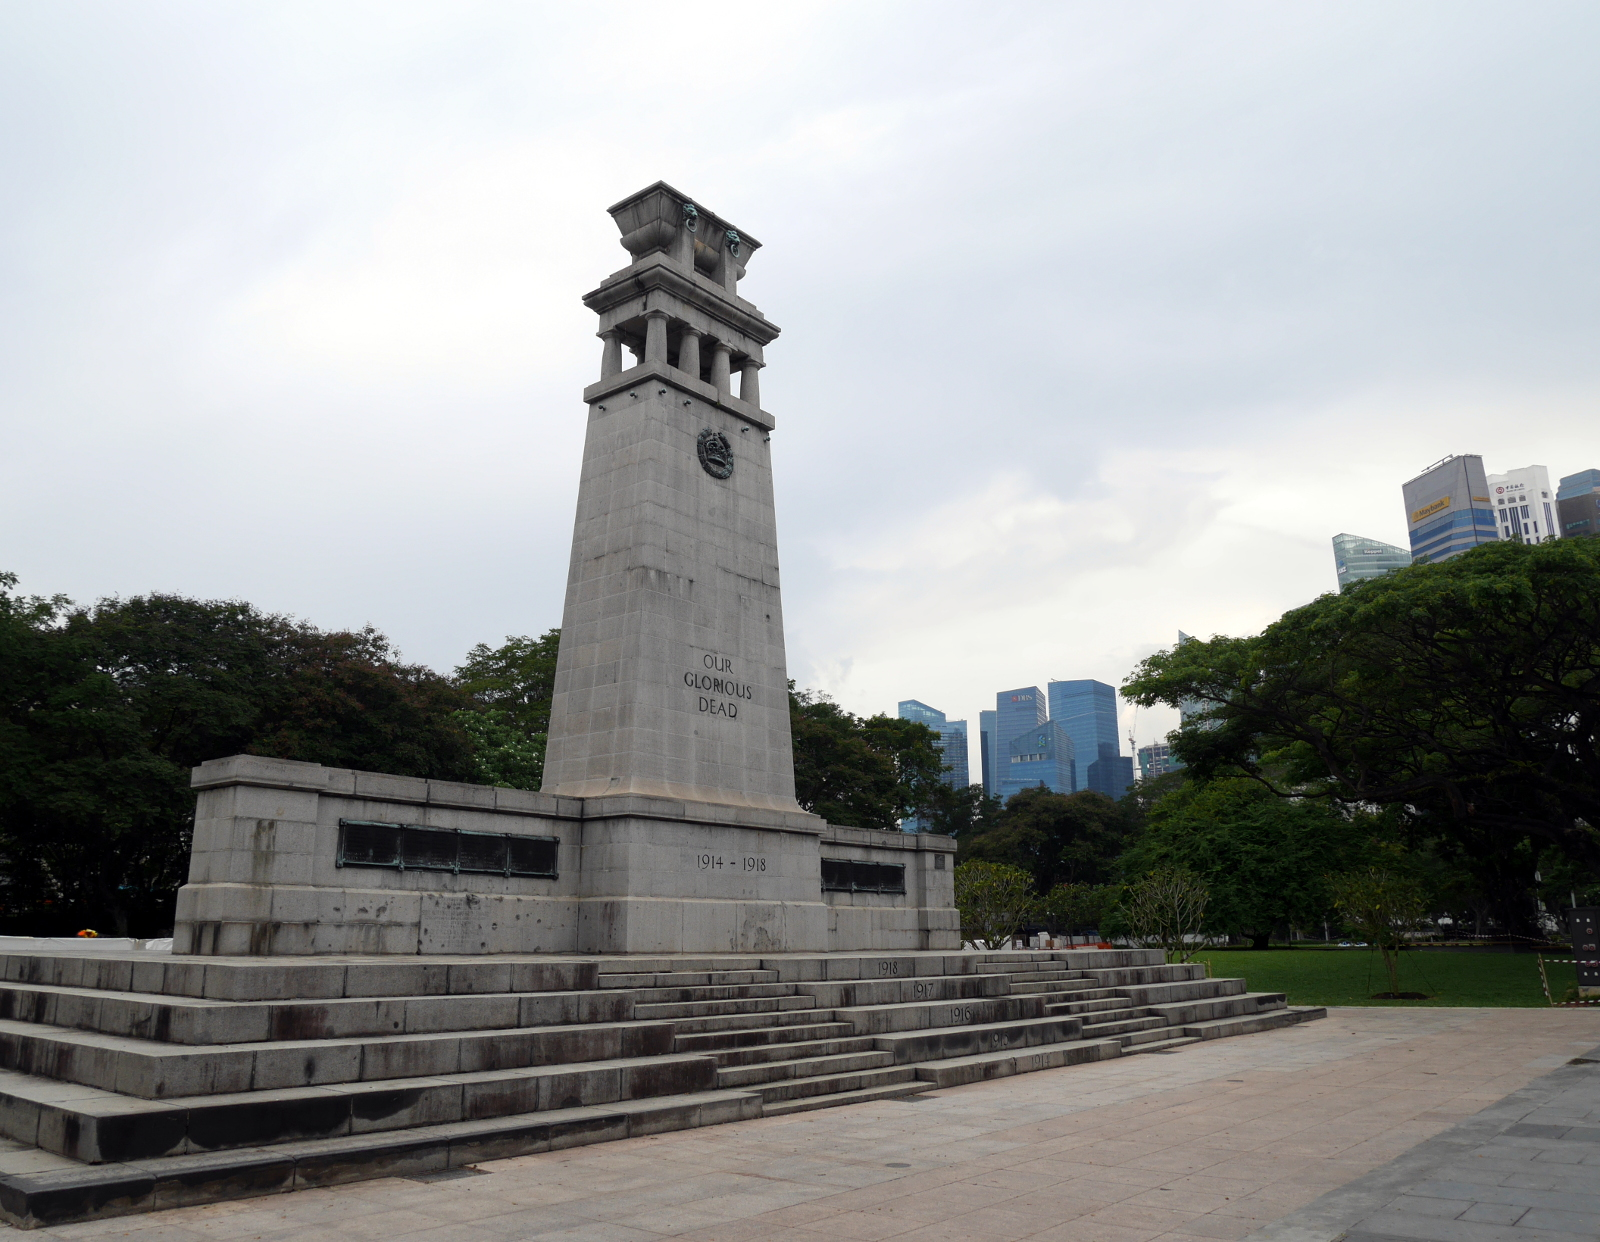 Singapore's monument to the Great War, which is inscribed in honor of the fallen of World War II on the back side.